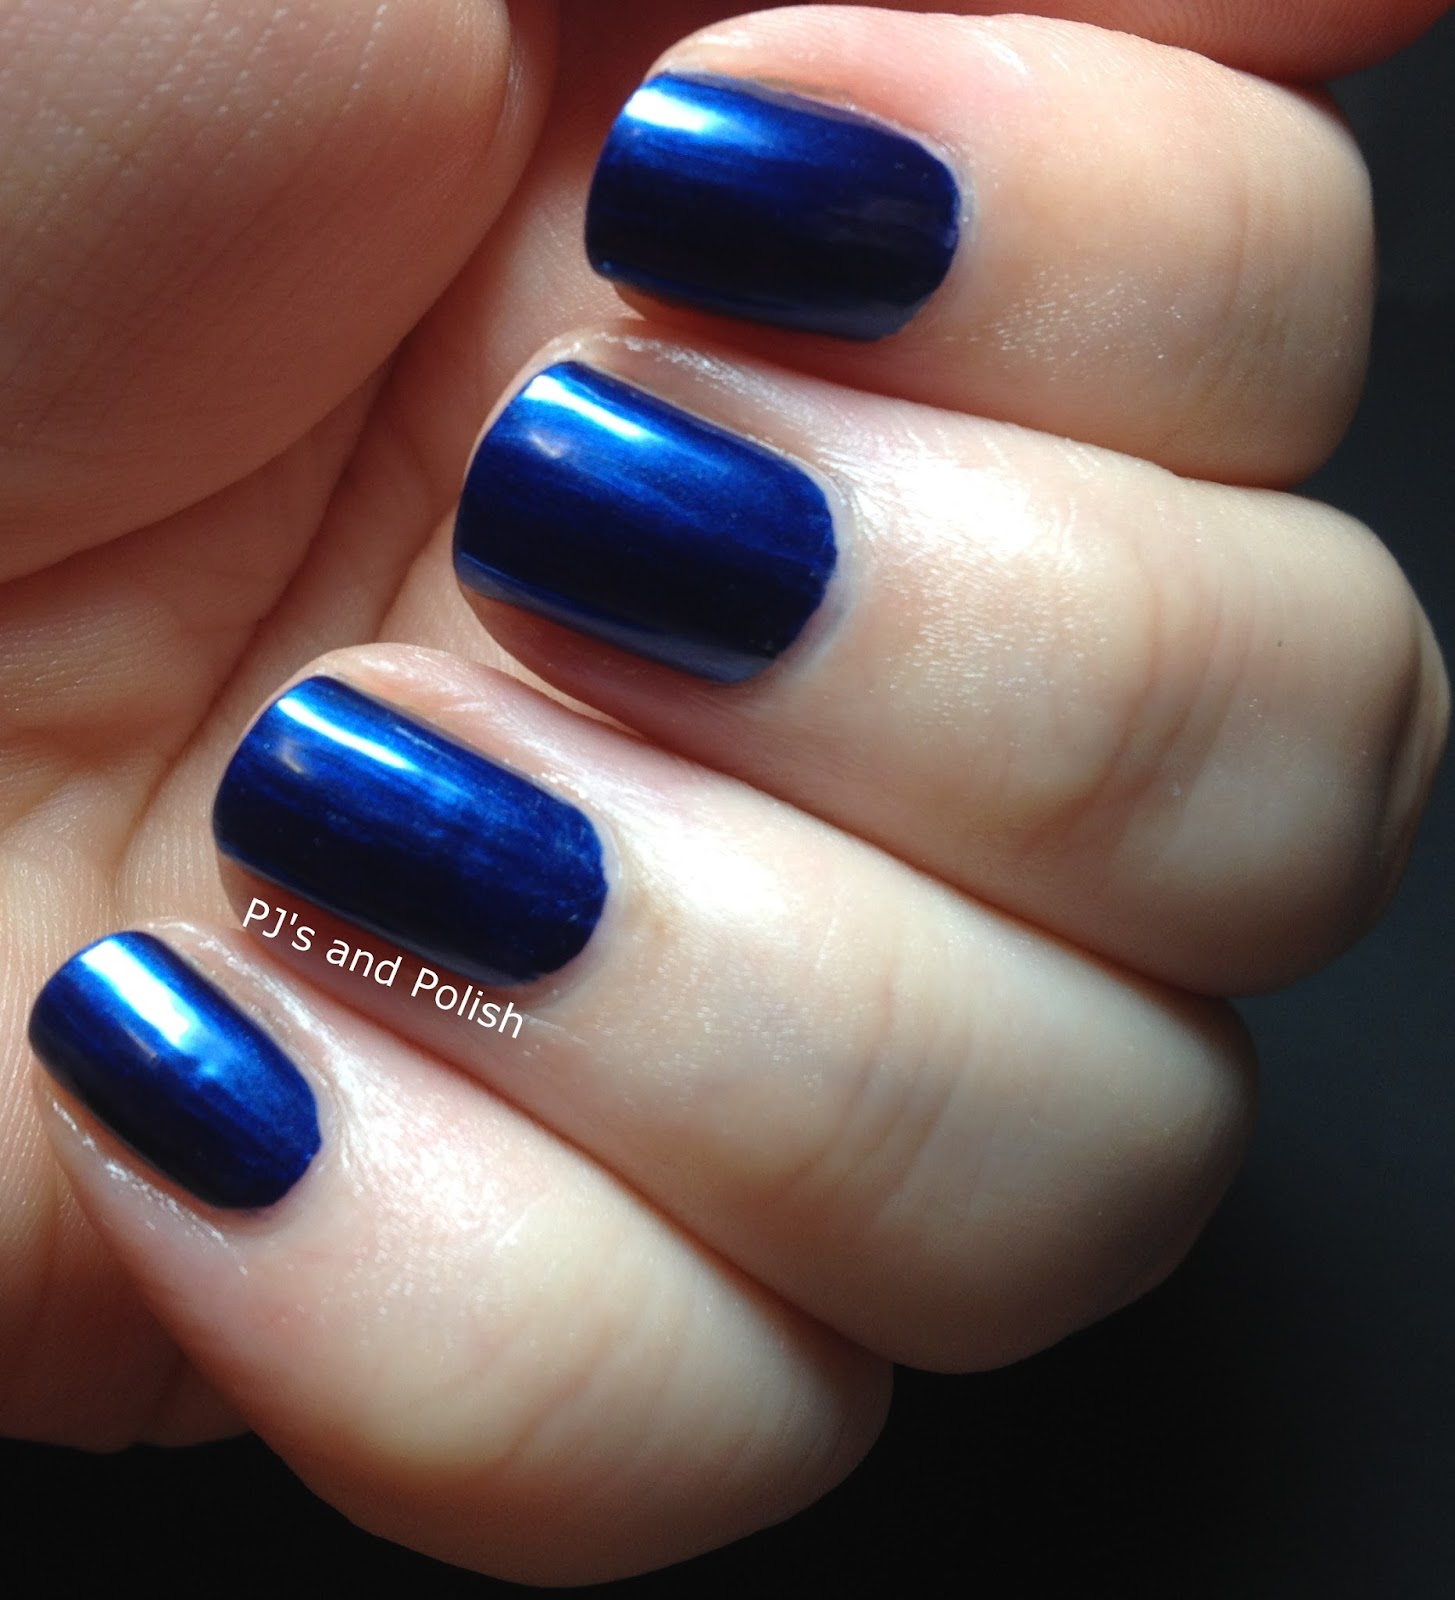 Swatch and Review China Glaze Autumn Nights Scandalous Shenanigans HK Girl